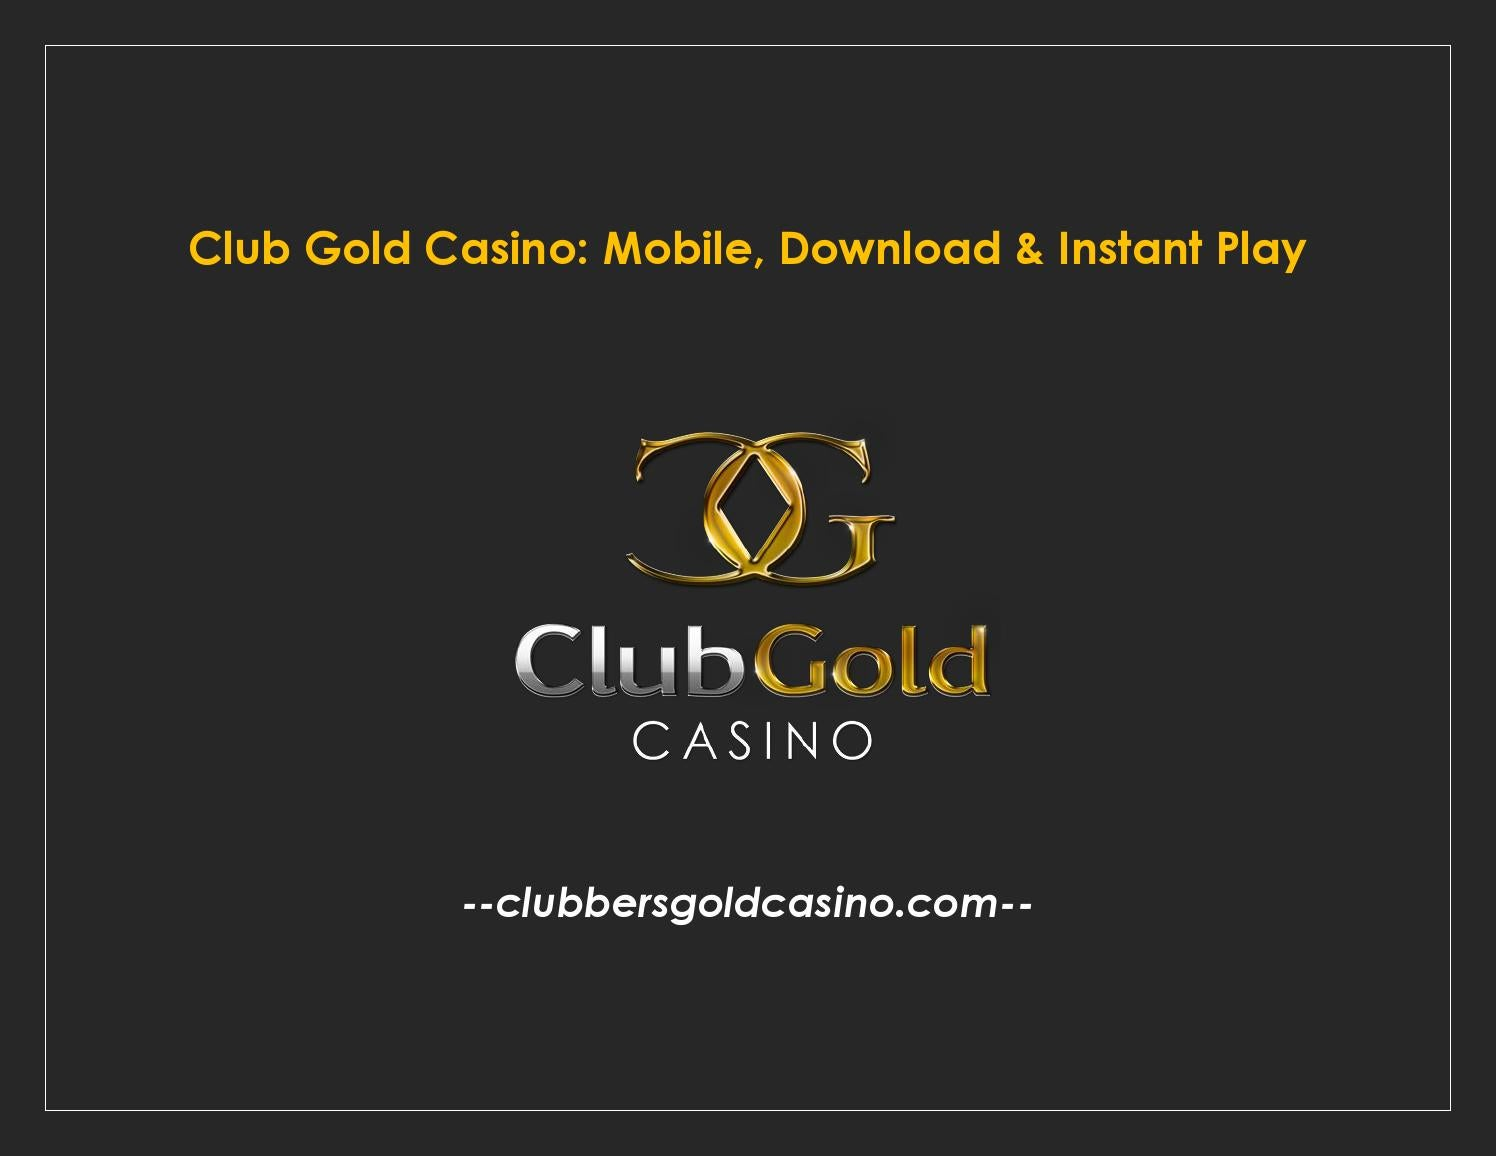 Club Gold Casino Mobile